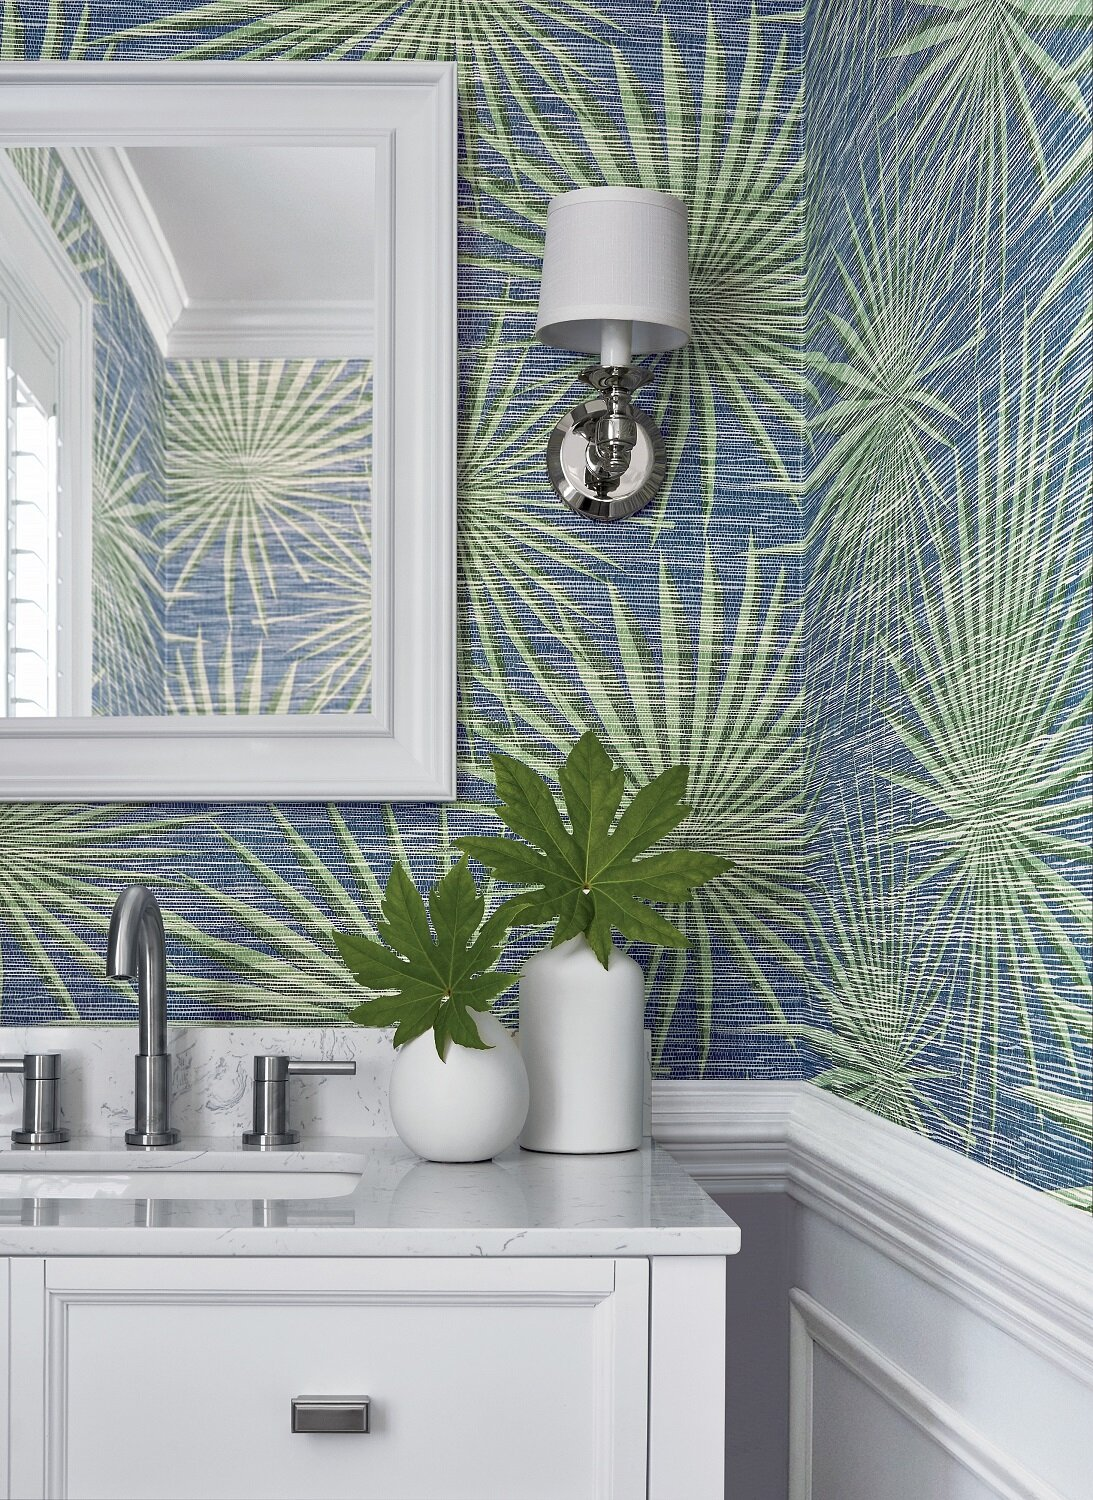 Powder rooms are the ideal spot for pattern and color. And no worries about water contact from showers and baths. Thibaut's Palm Frond wallpaper from its Tropics collection adds a perfect coastal vibe to a home. Photo: Thibaut